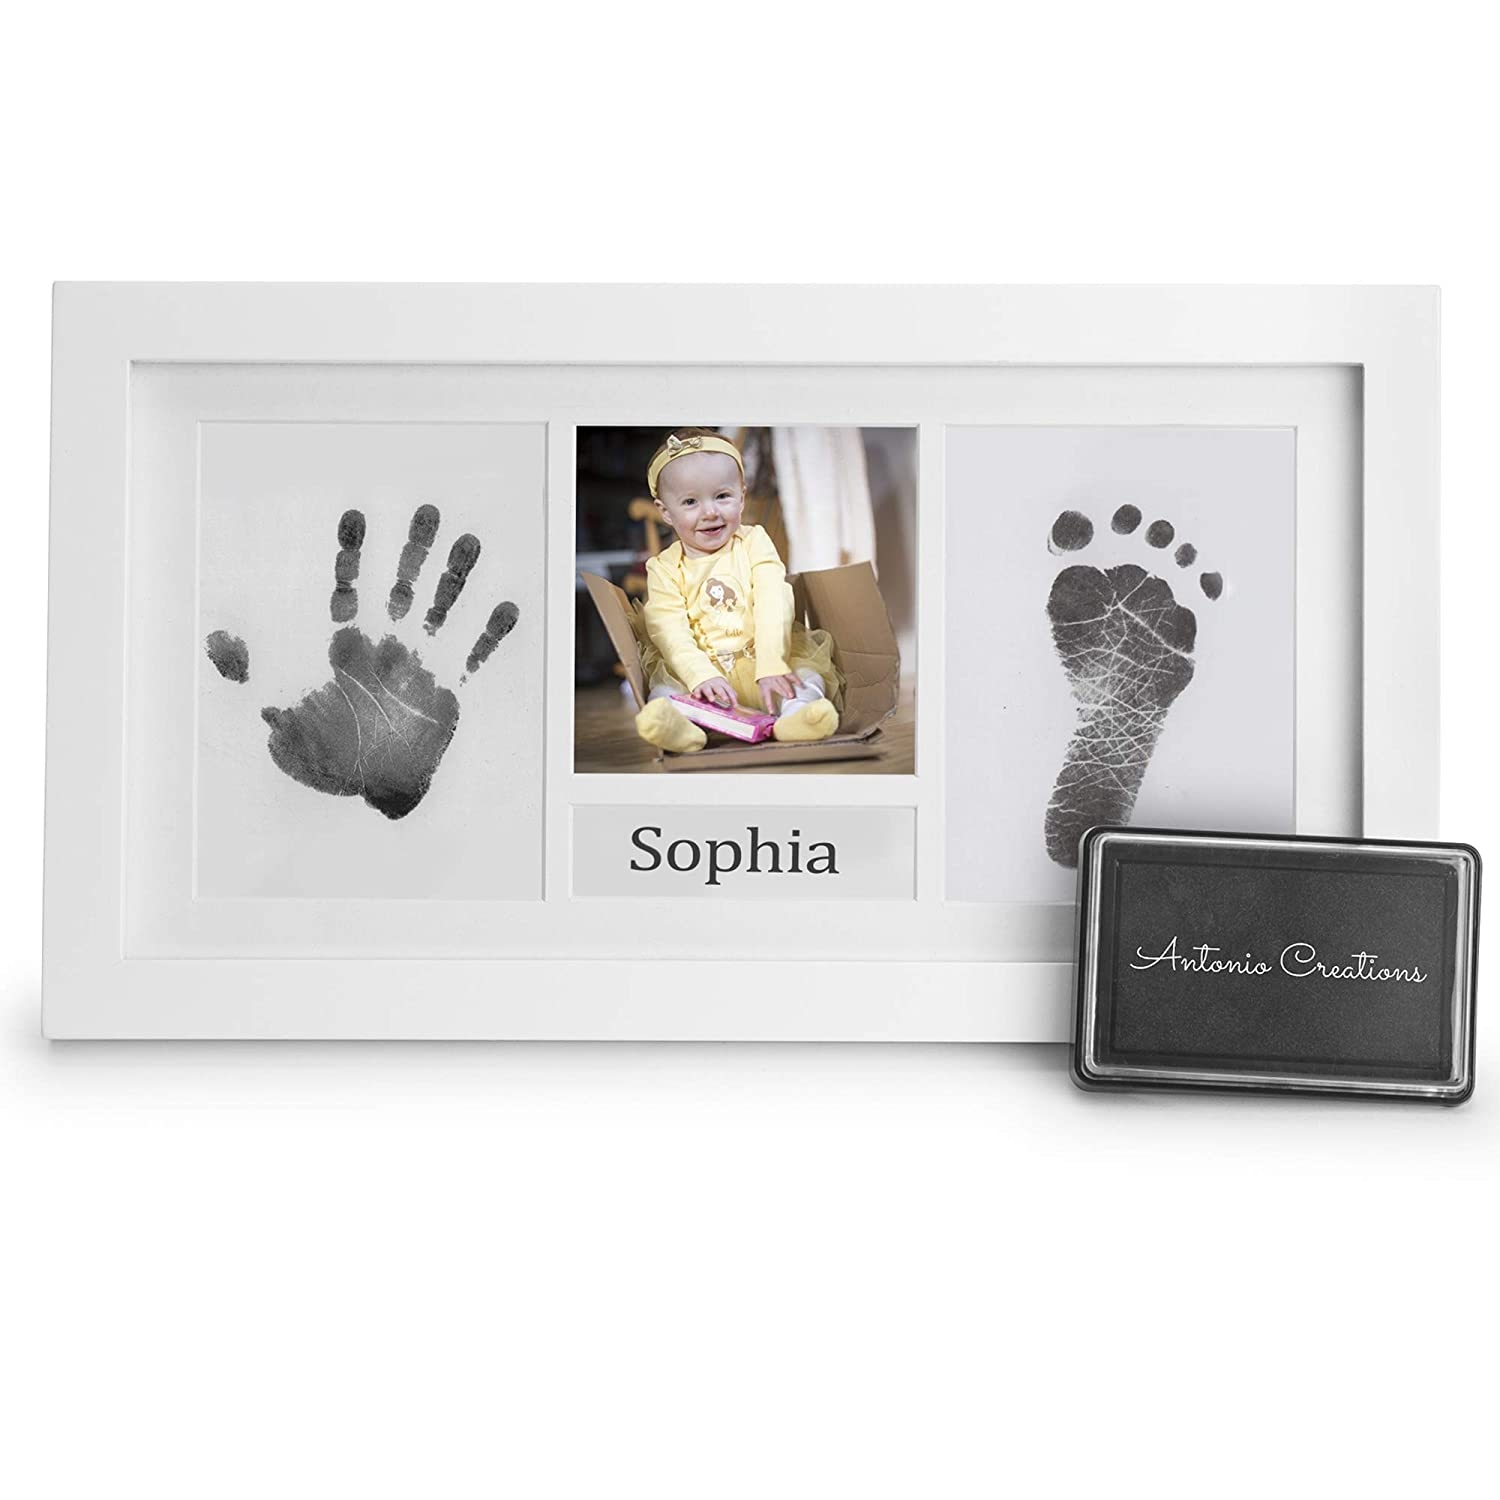 Baby Handprint Kit & Footprint Photo Frame for Newborns Baby Shower Registry Christening Keepsake Gift Extra Large Ink Pad, Two Mounts, Name Section for Baby with Two Name Cards. A Beautiful Handmade Memory Gift for Wall & Table Decor by Antonio C